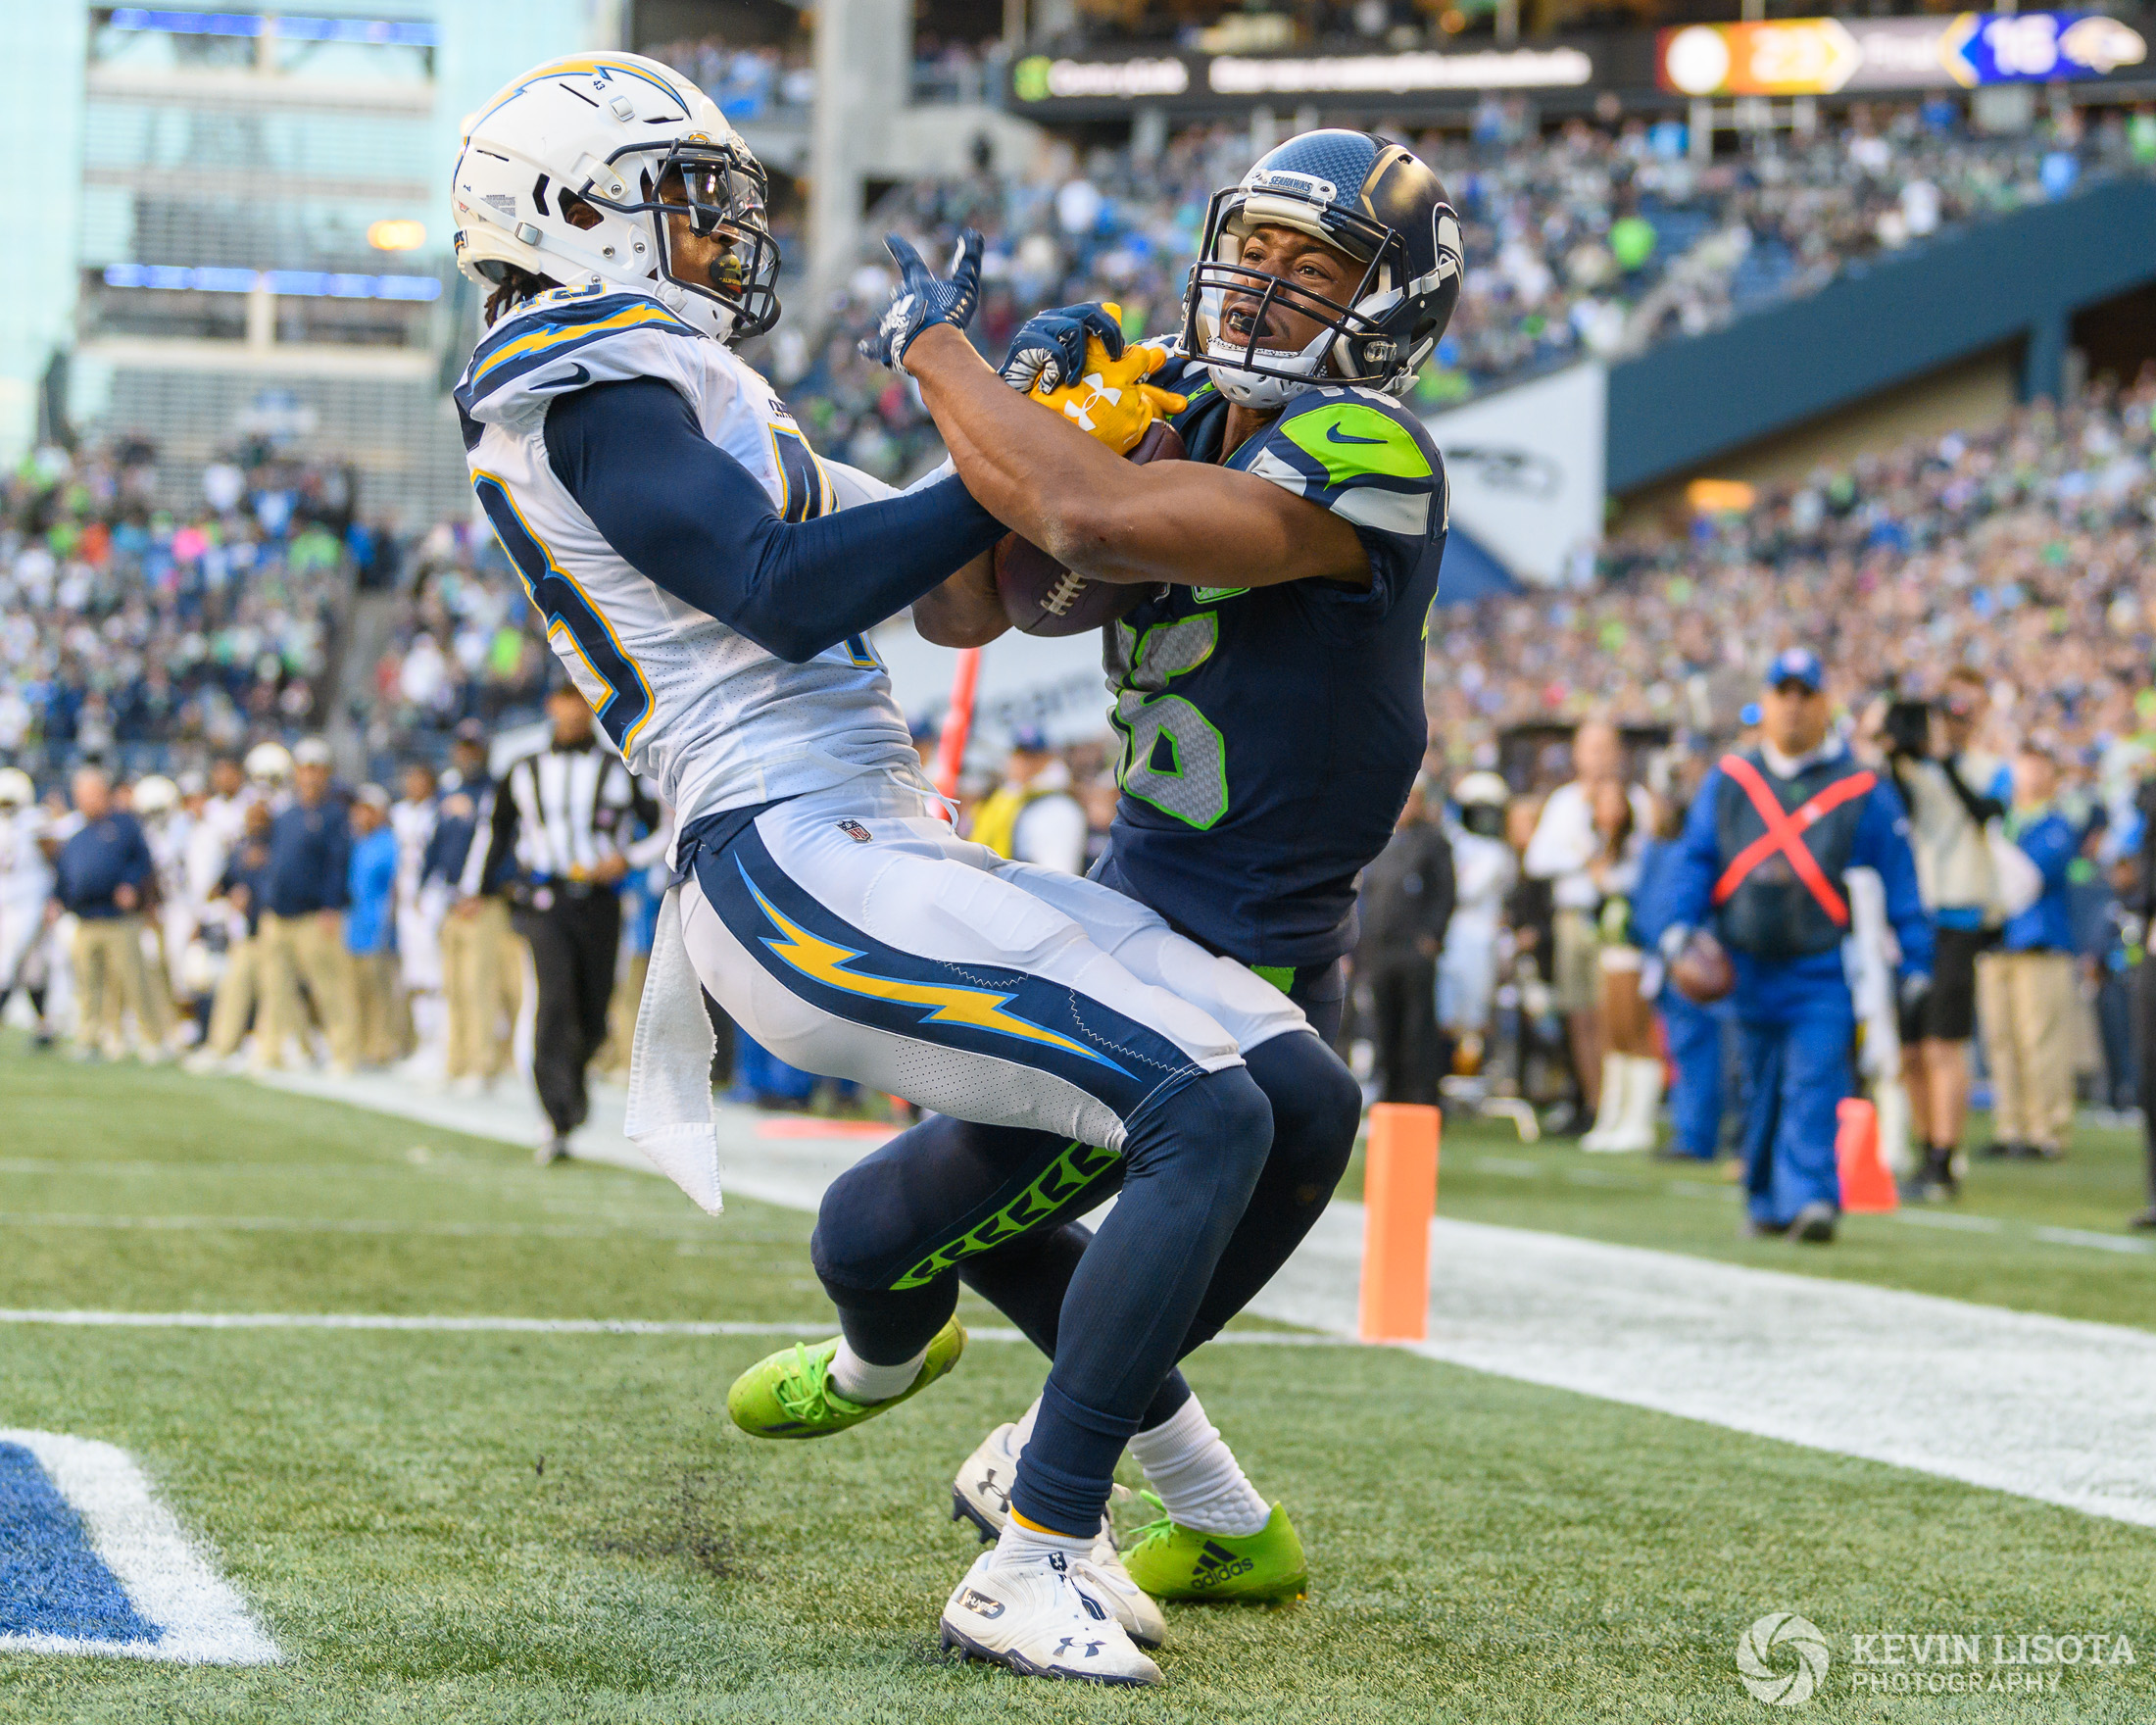 Seattle Sehawks vs. Los Angeles Chargers - November 4, 2018